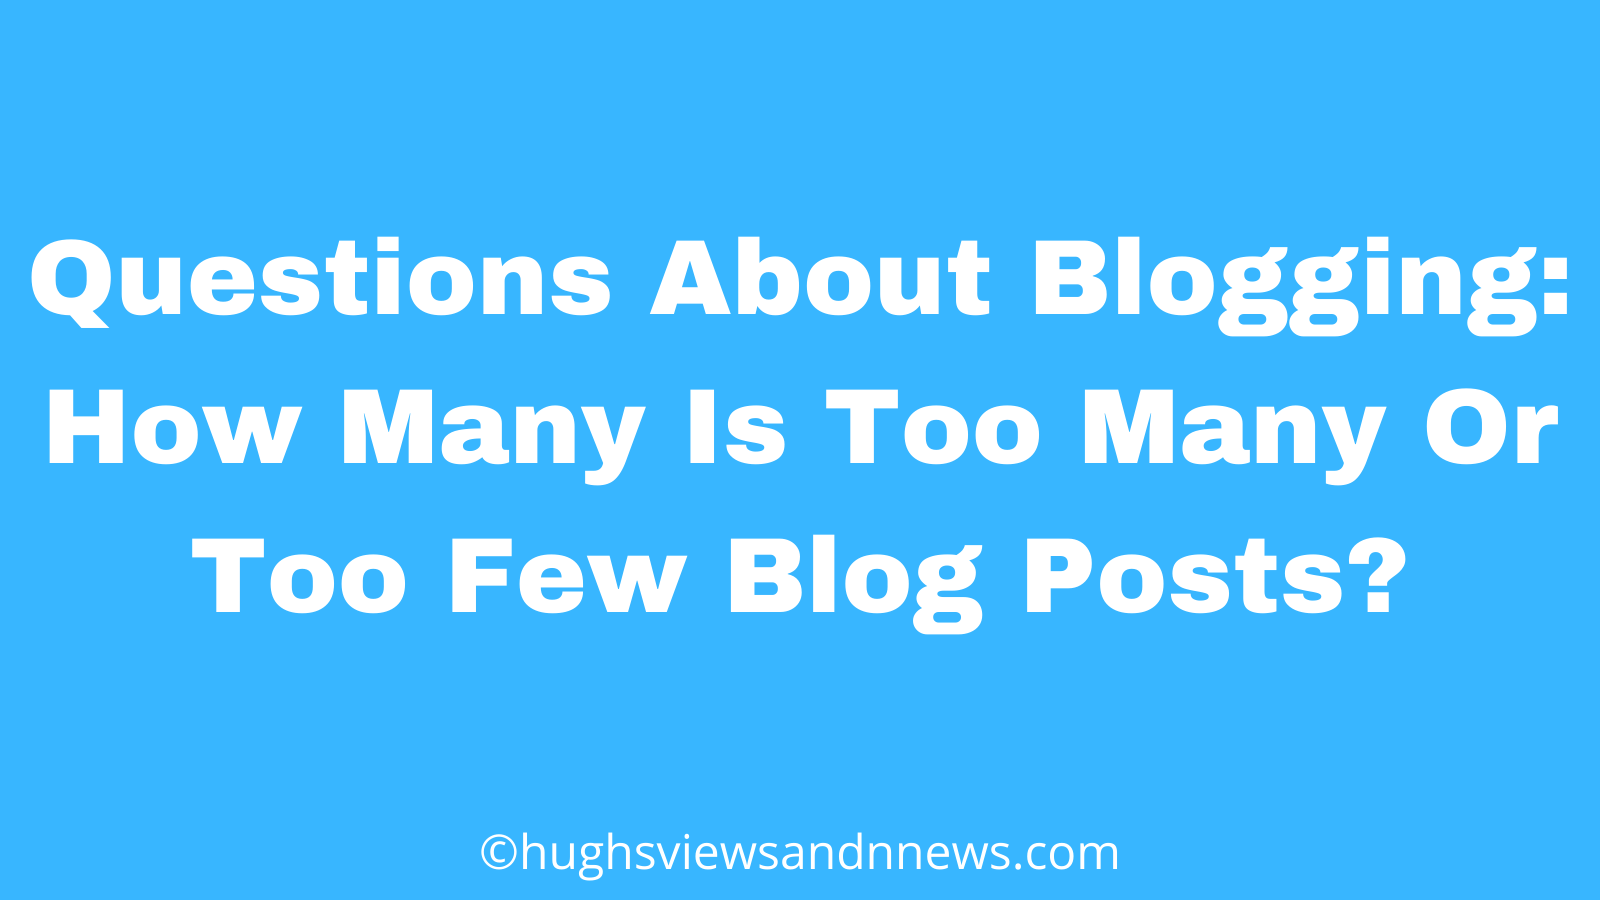 Banner for the blog post: Questions About Blogging: How Many Is Too Many Or Too Few Blog posts?